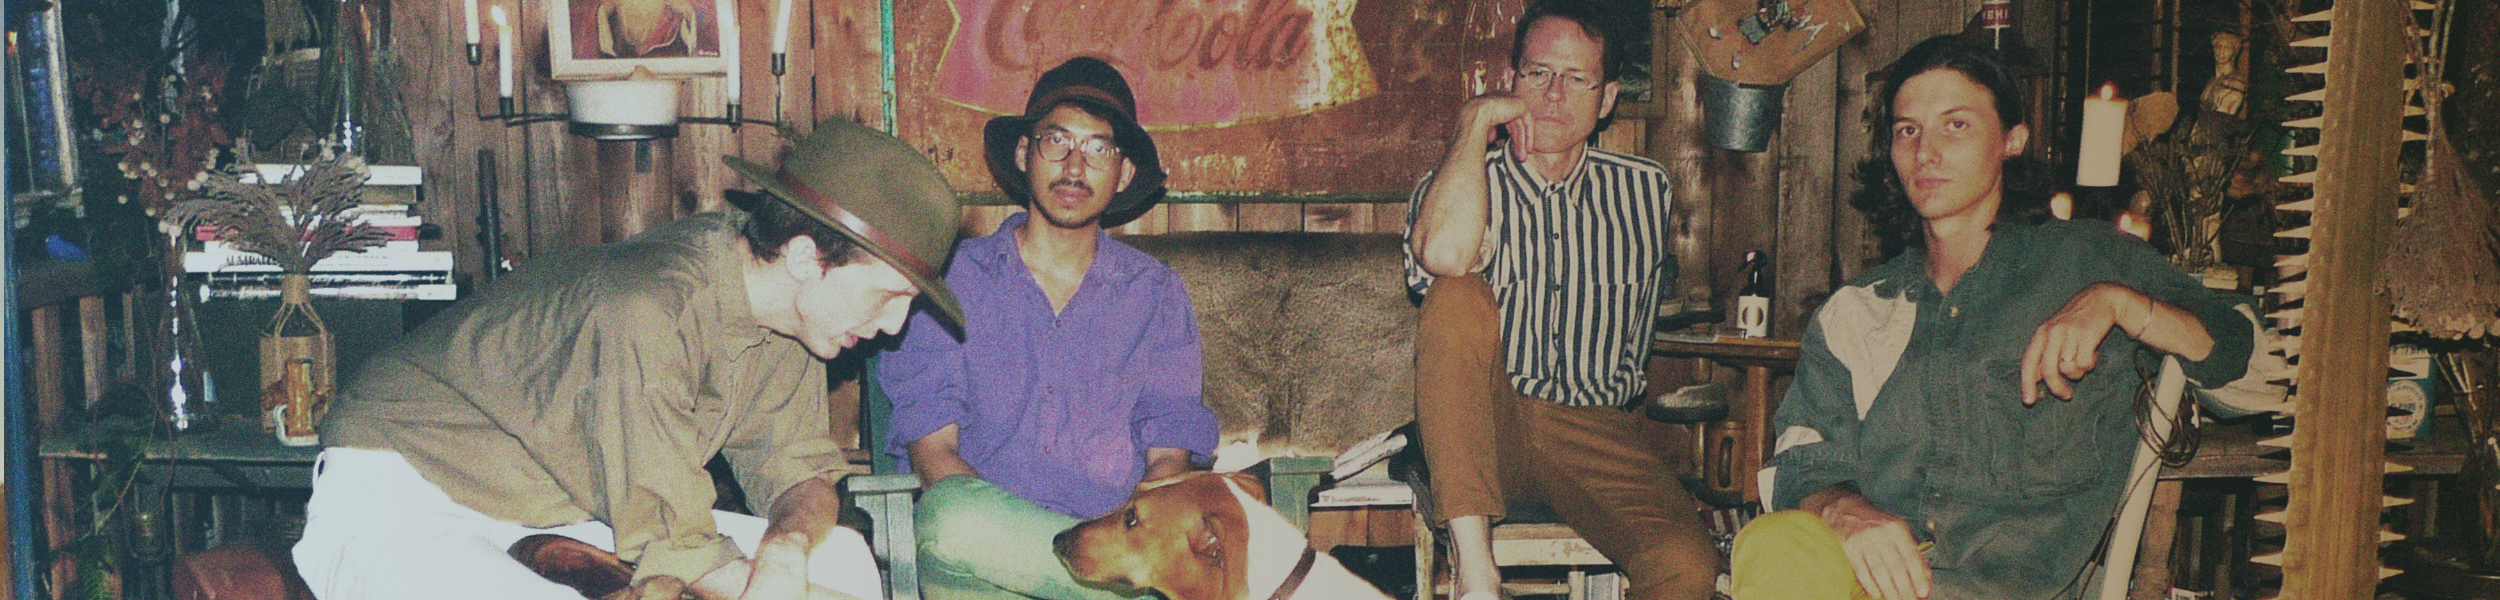 Deerhunter - Deerhunter Announce European Tour, Including UK Dates